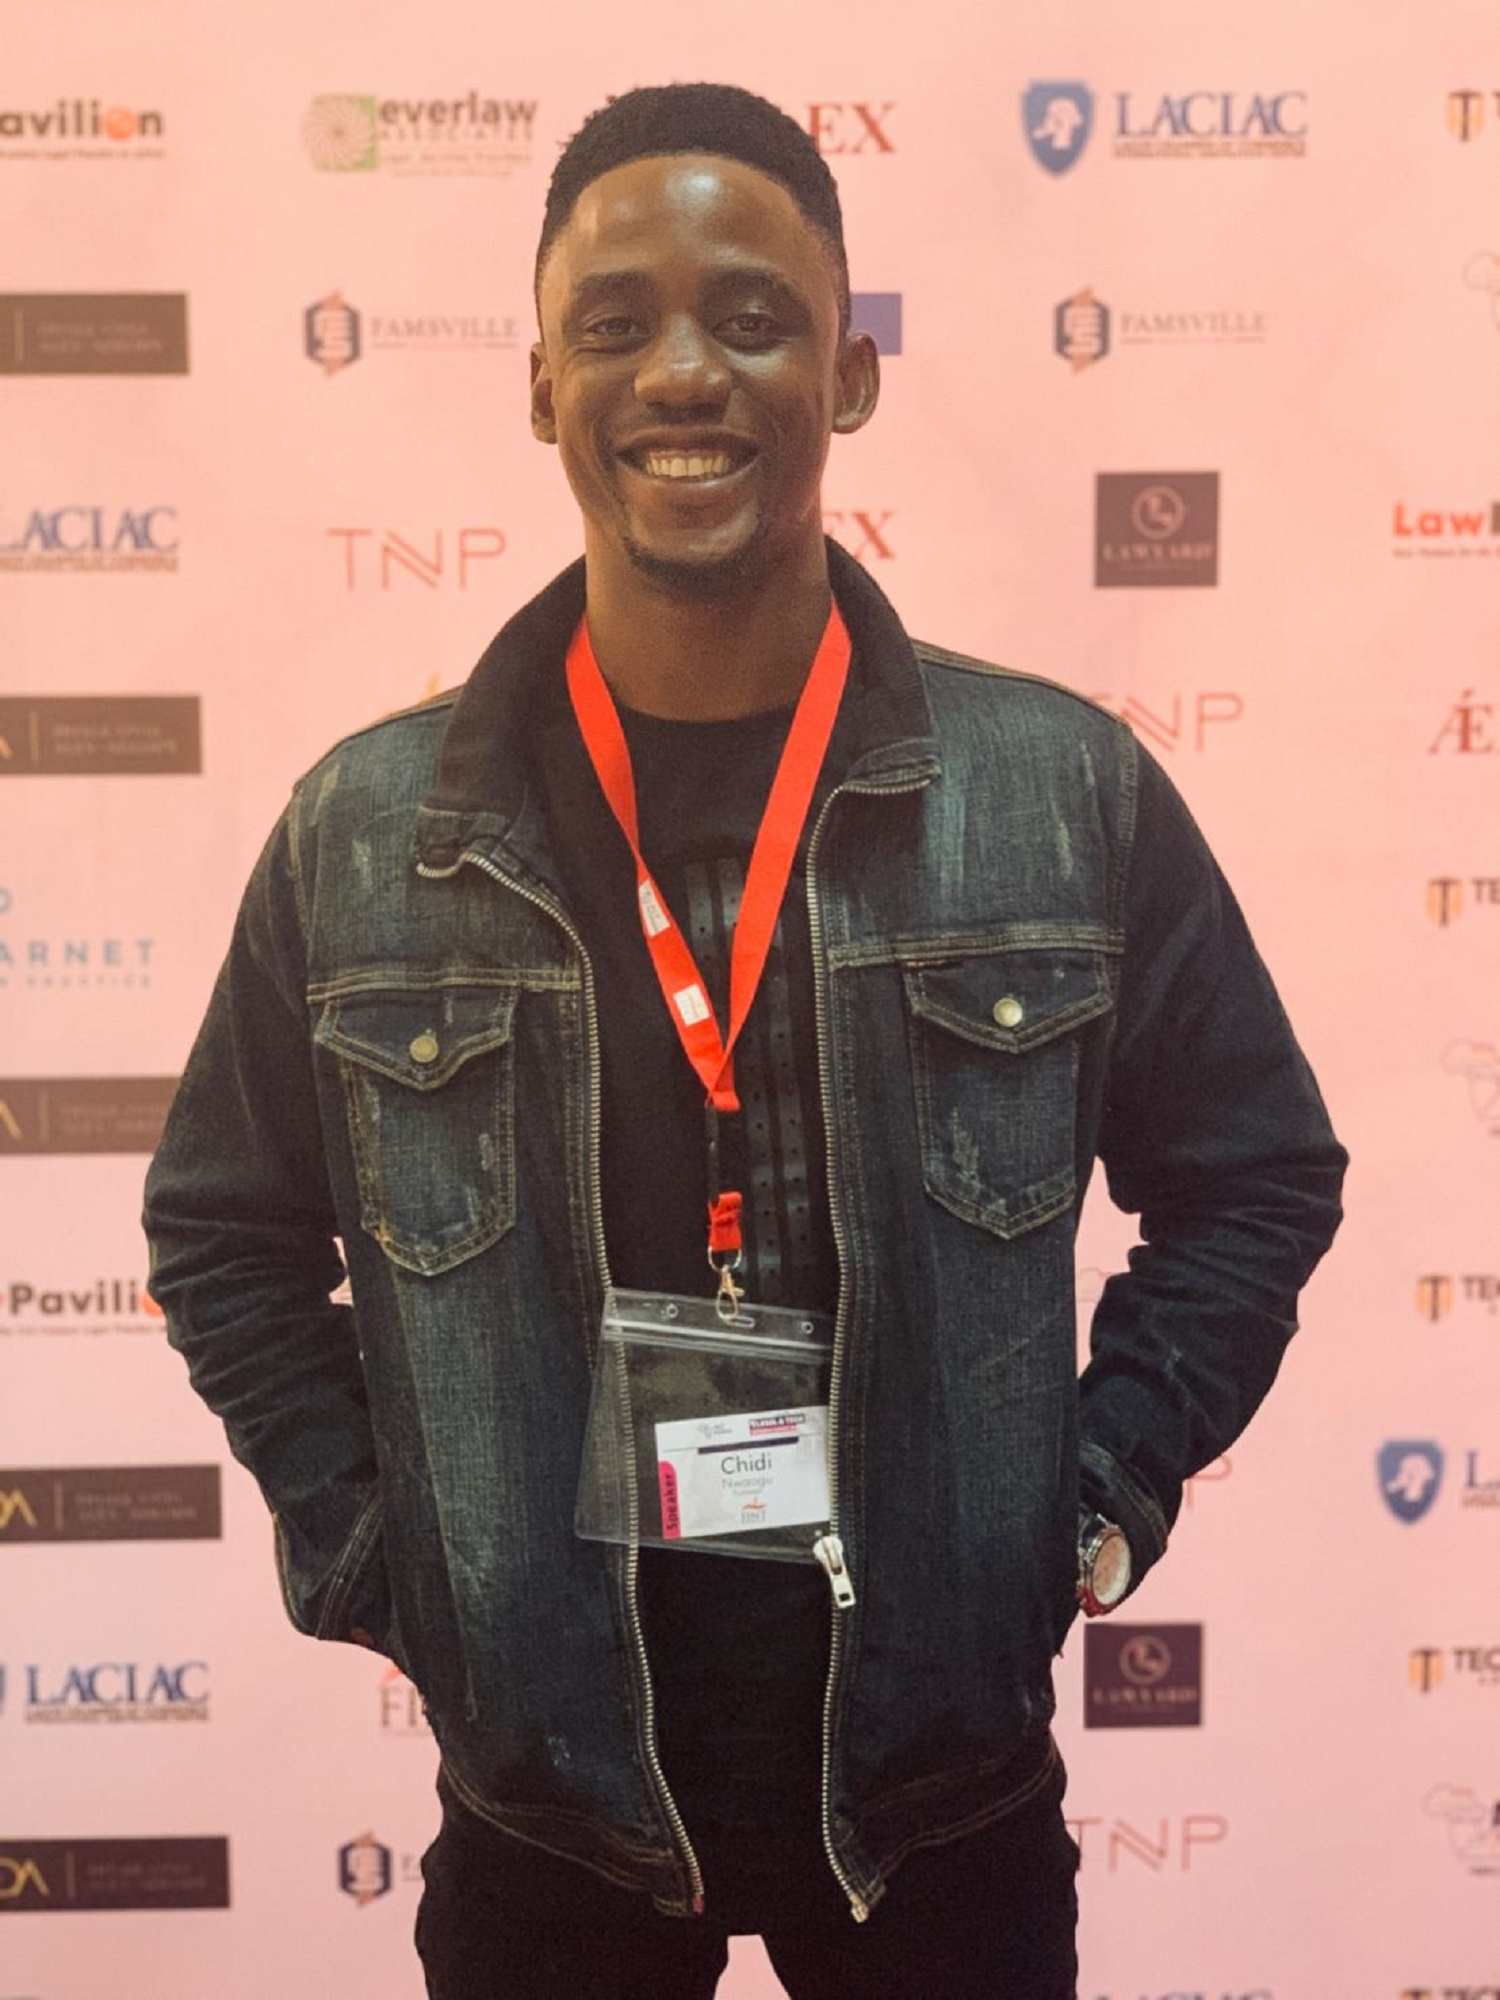 Nigerian startup accepted into Accelerator Program in Turkey